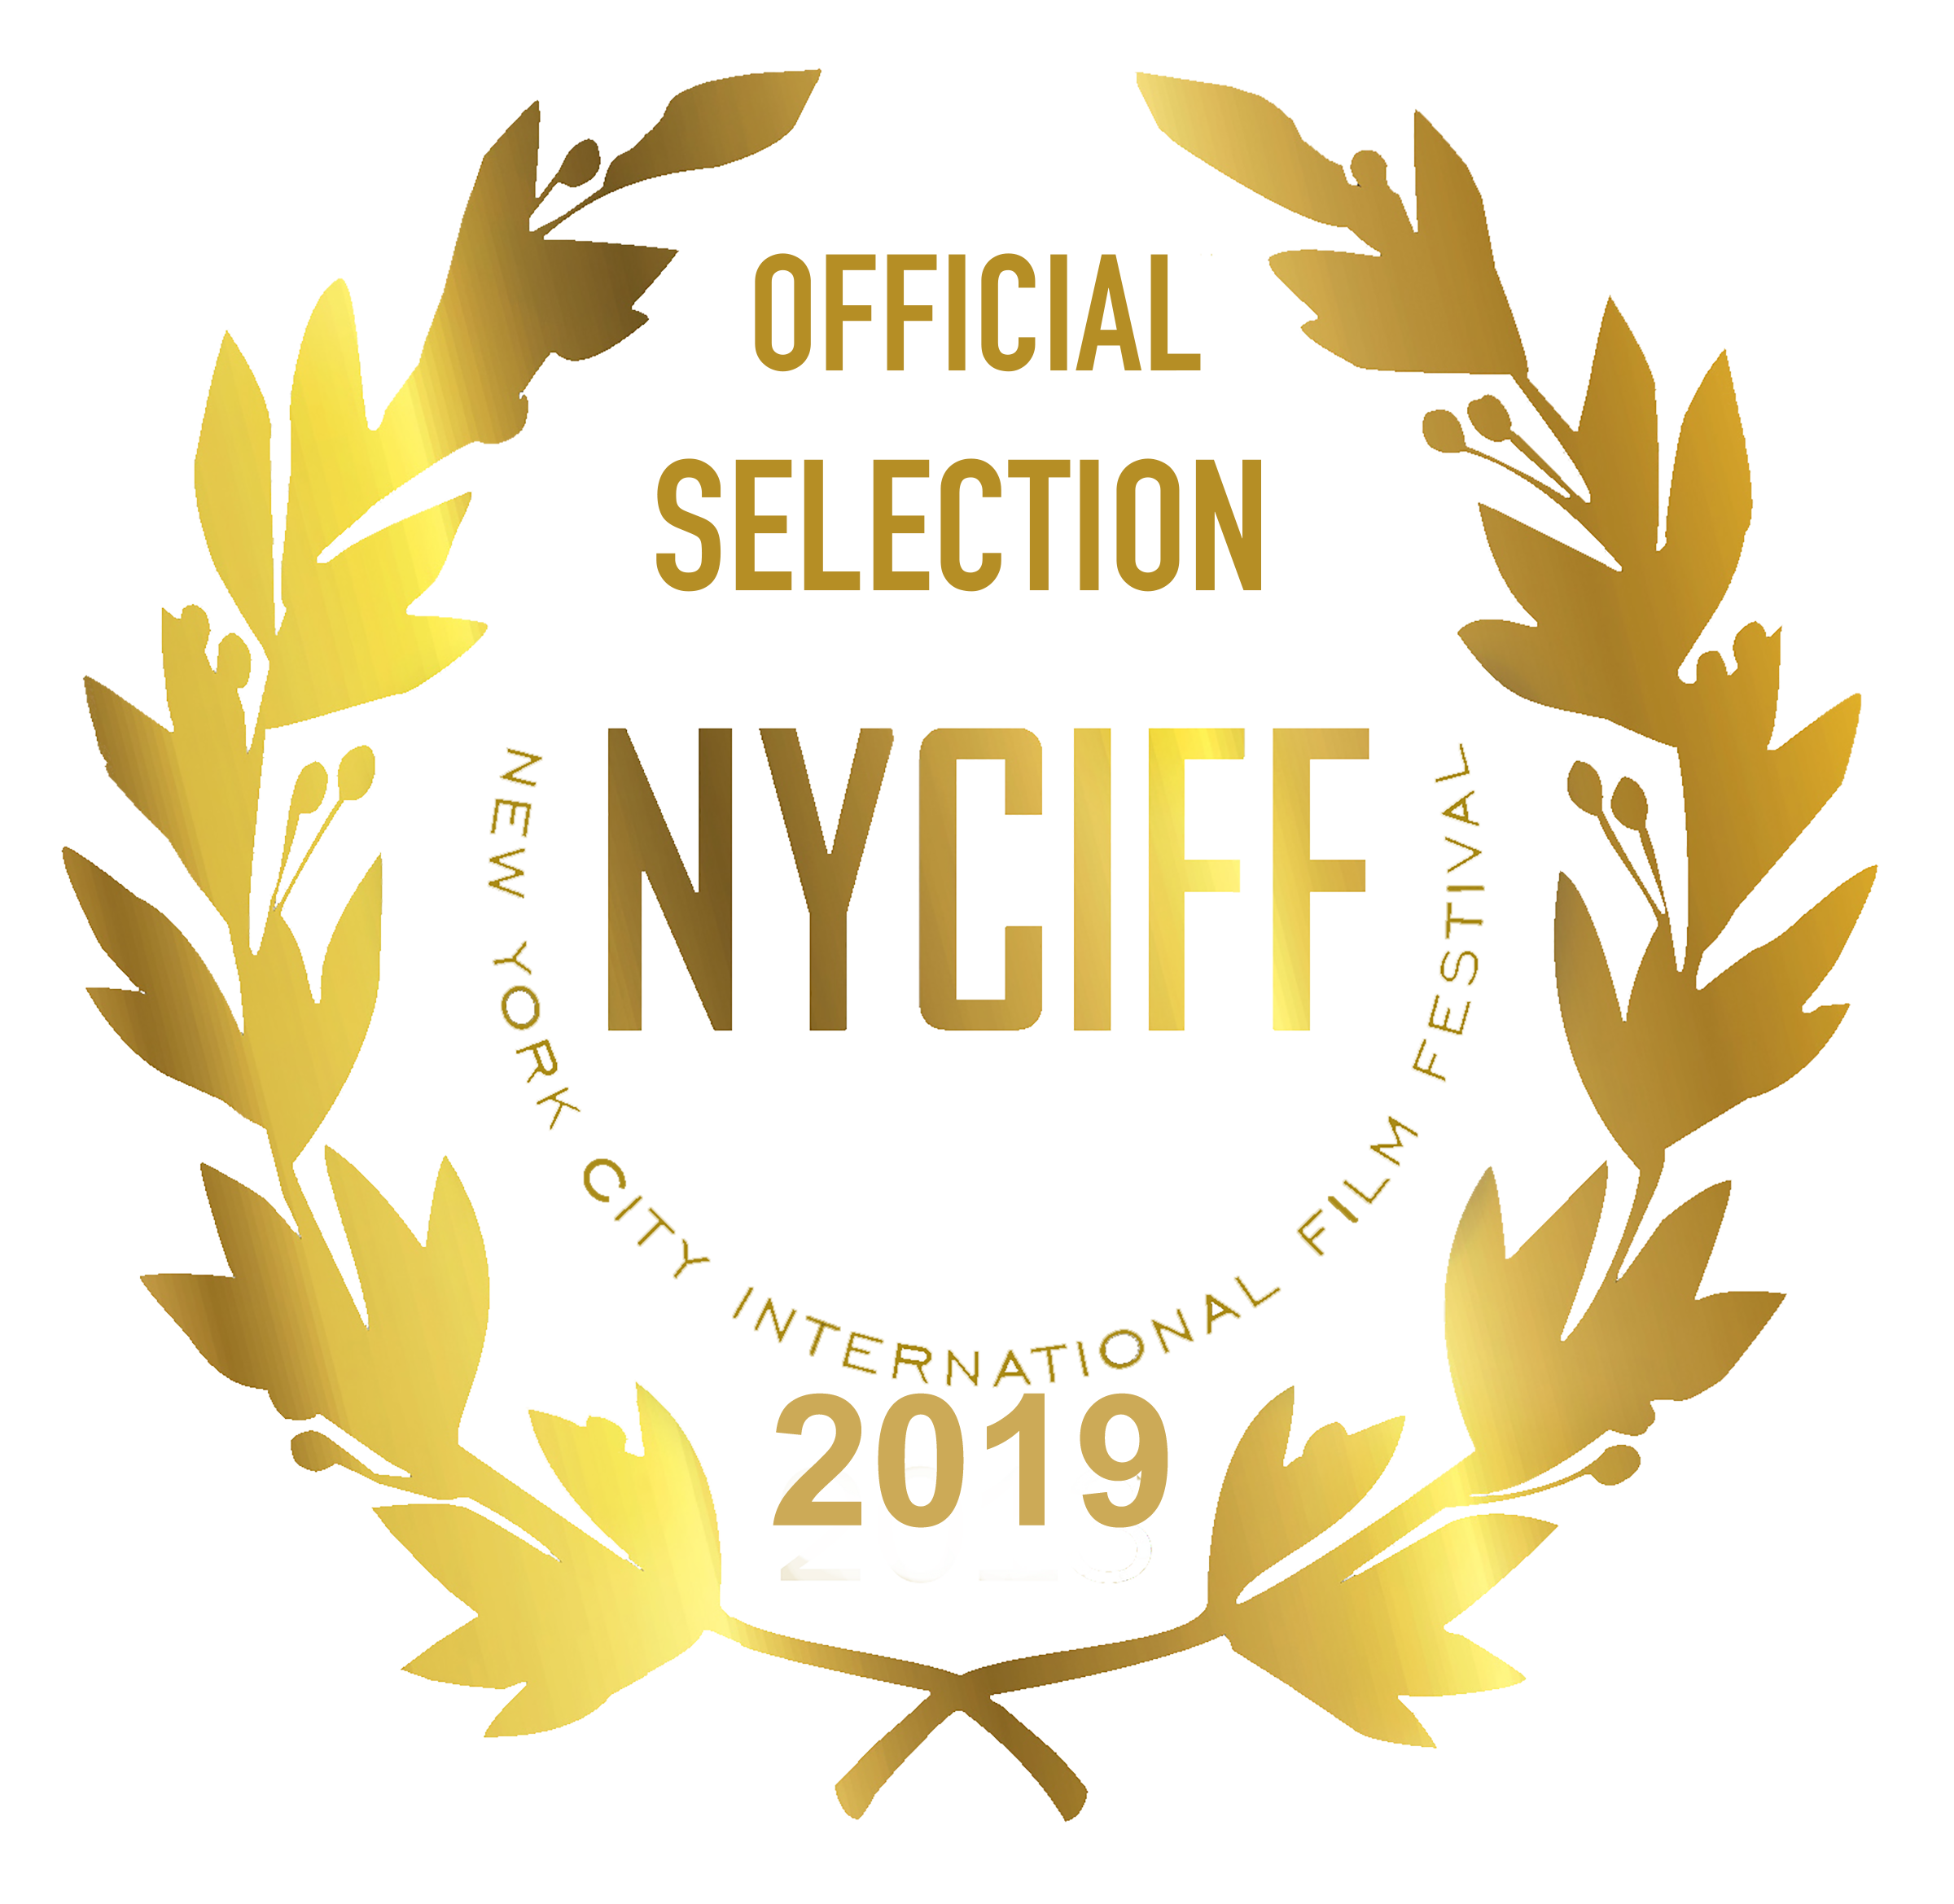 OFFICIAL SELECTION - NYCIFF 2019 - PSD-PNG -  300 dpi.png